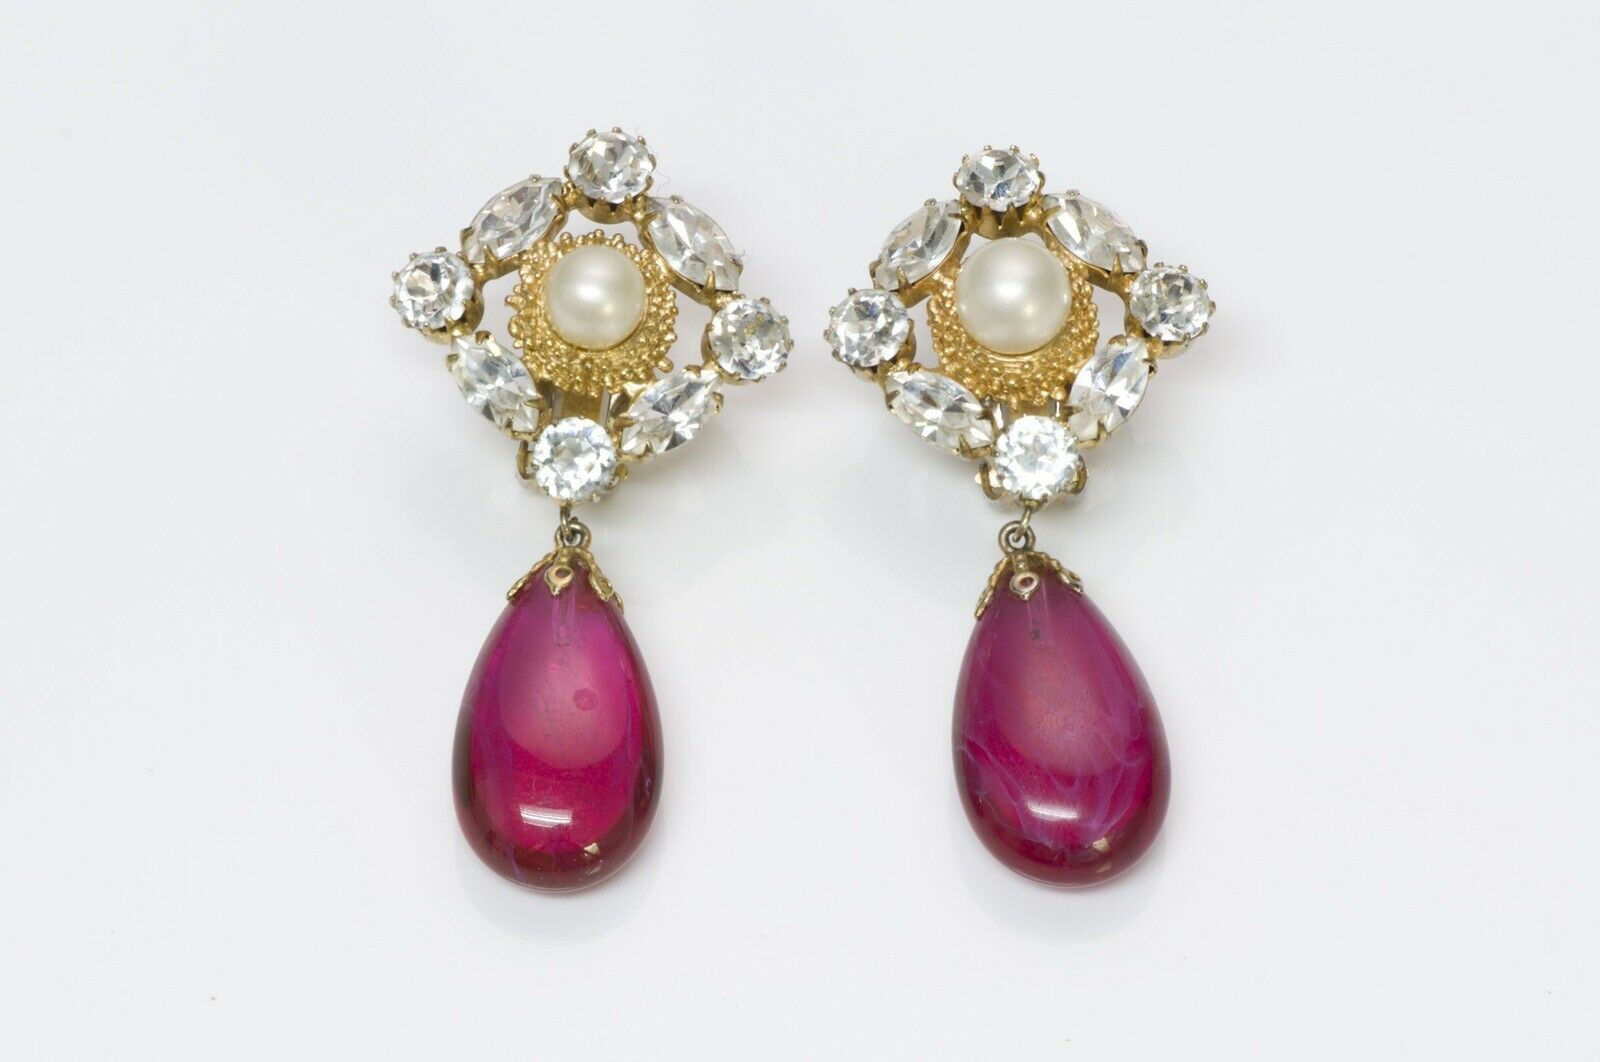 Arnold Scaasi Couture Crystal Pink Glass Earrings - image 1